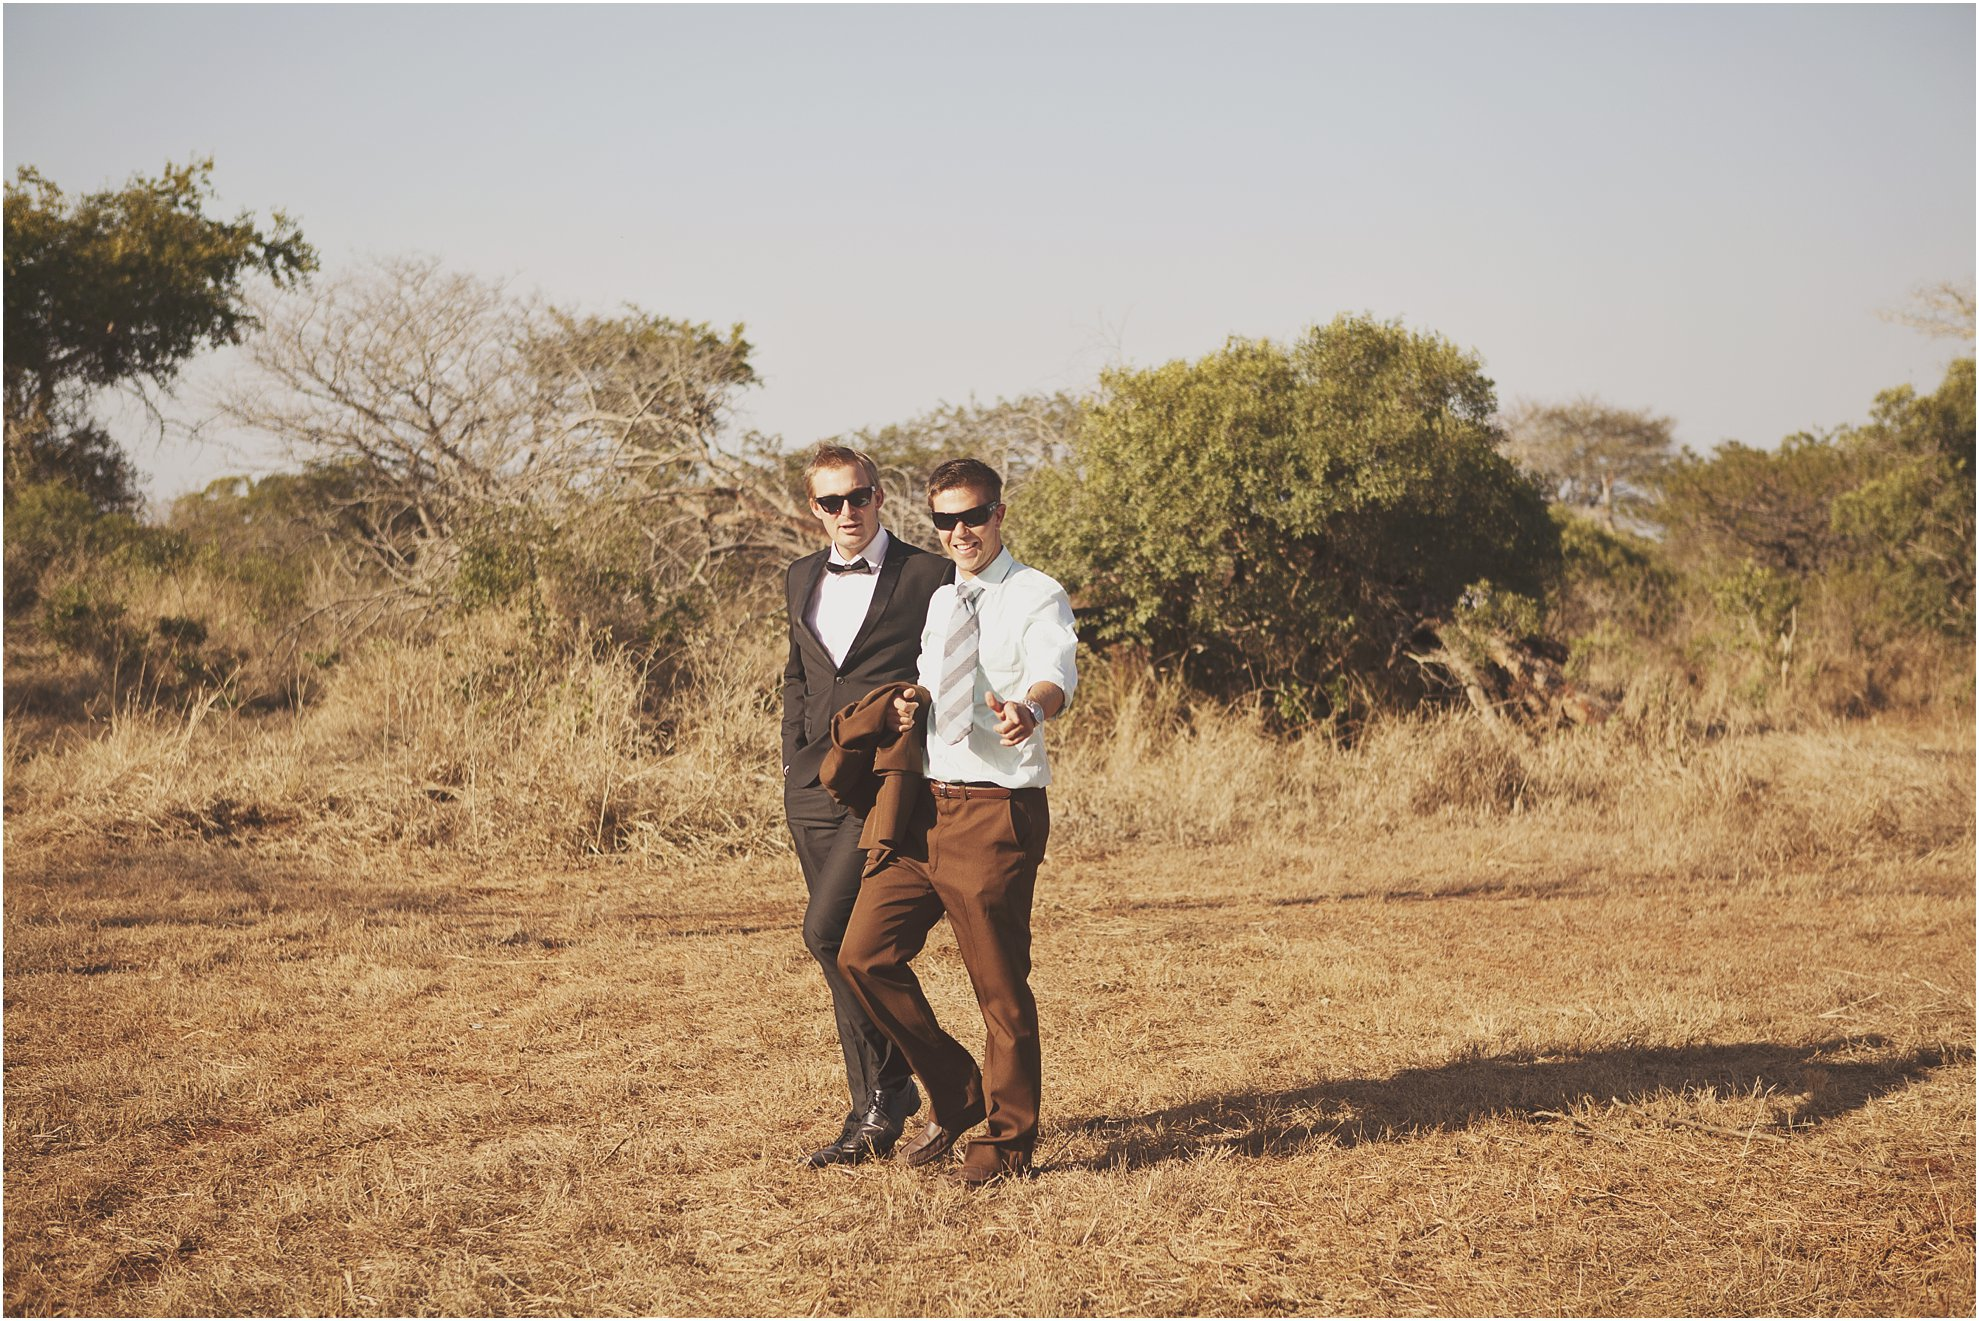 FIONA CLAIR PHOTOGRAPHY Jean & Natalie Swart 01 06 2013_0052